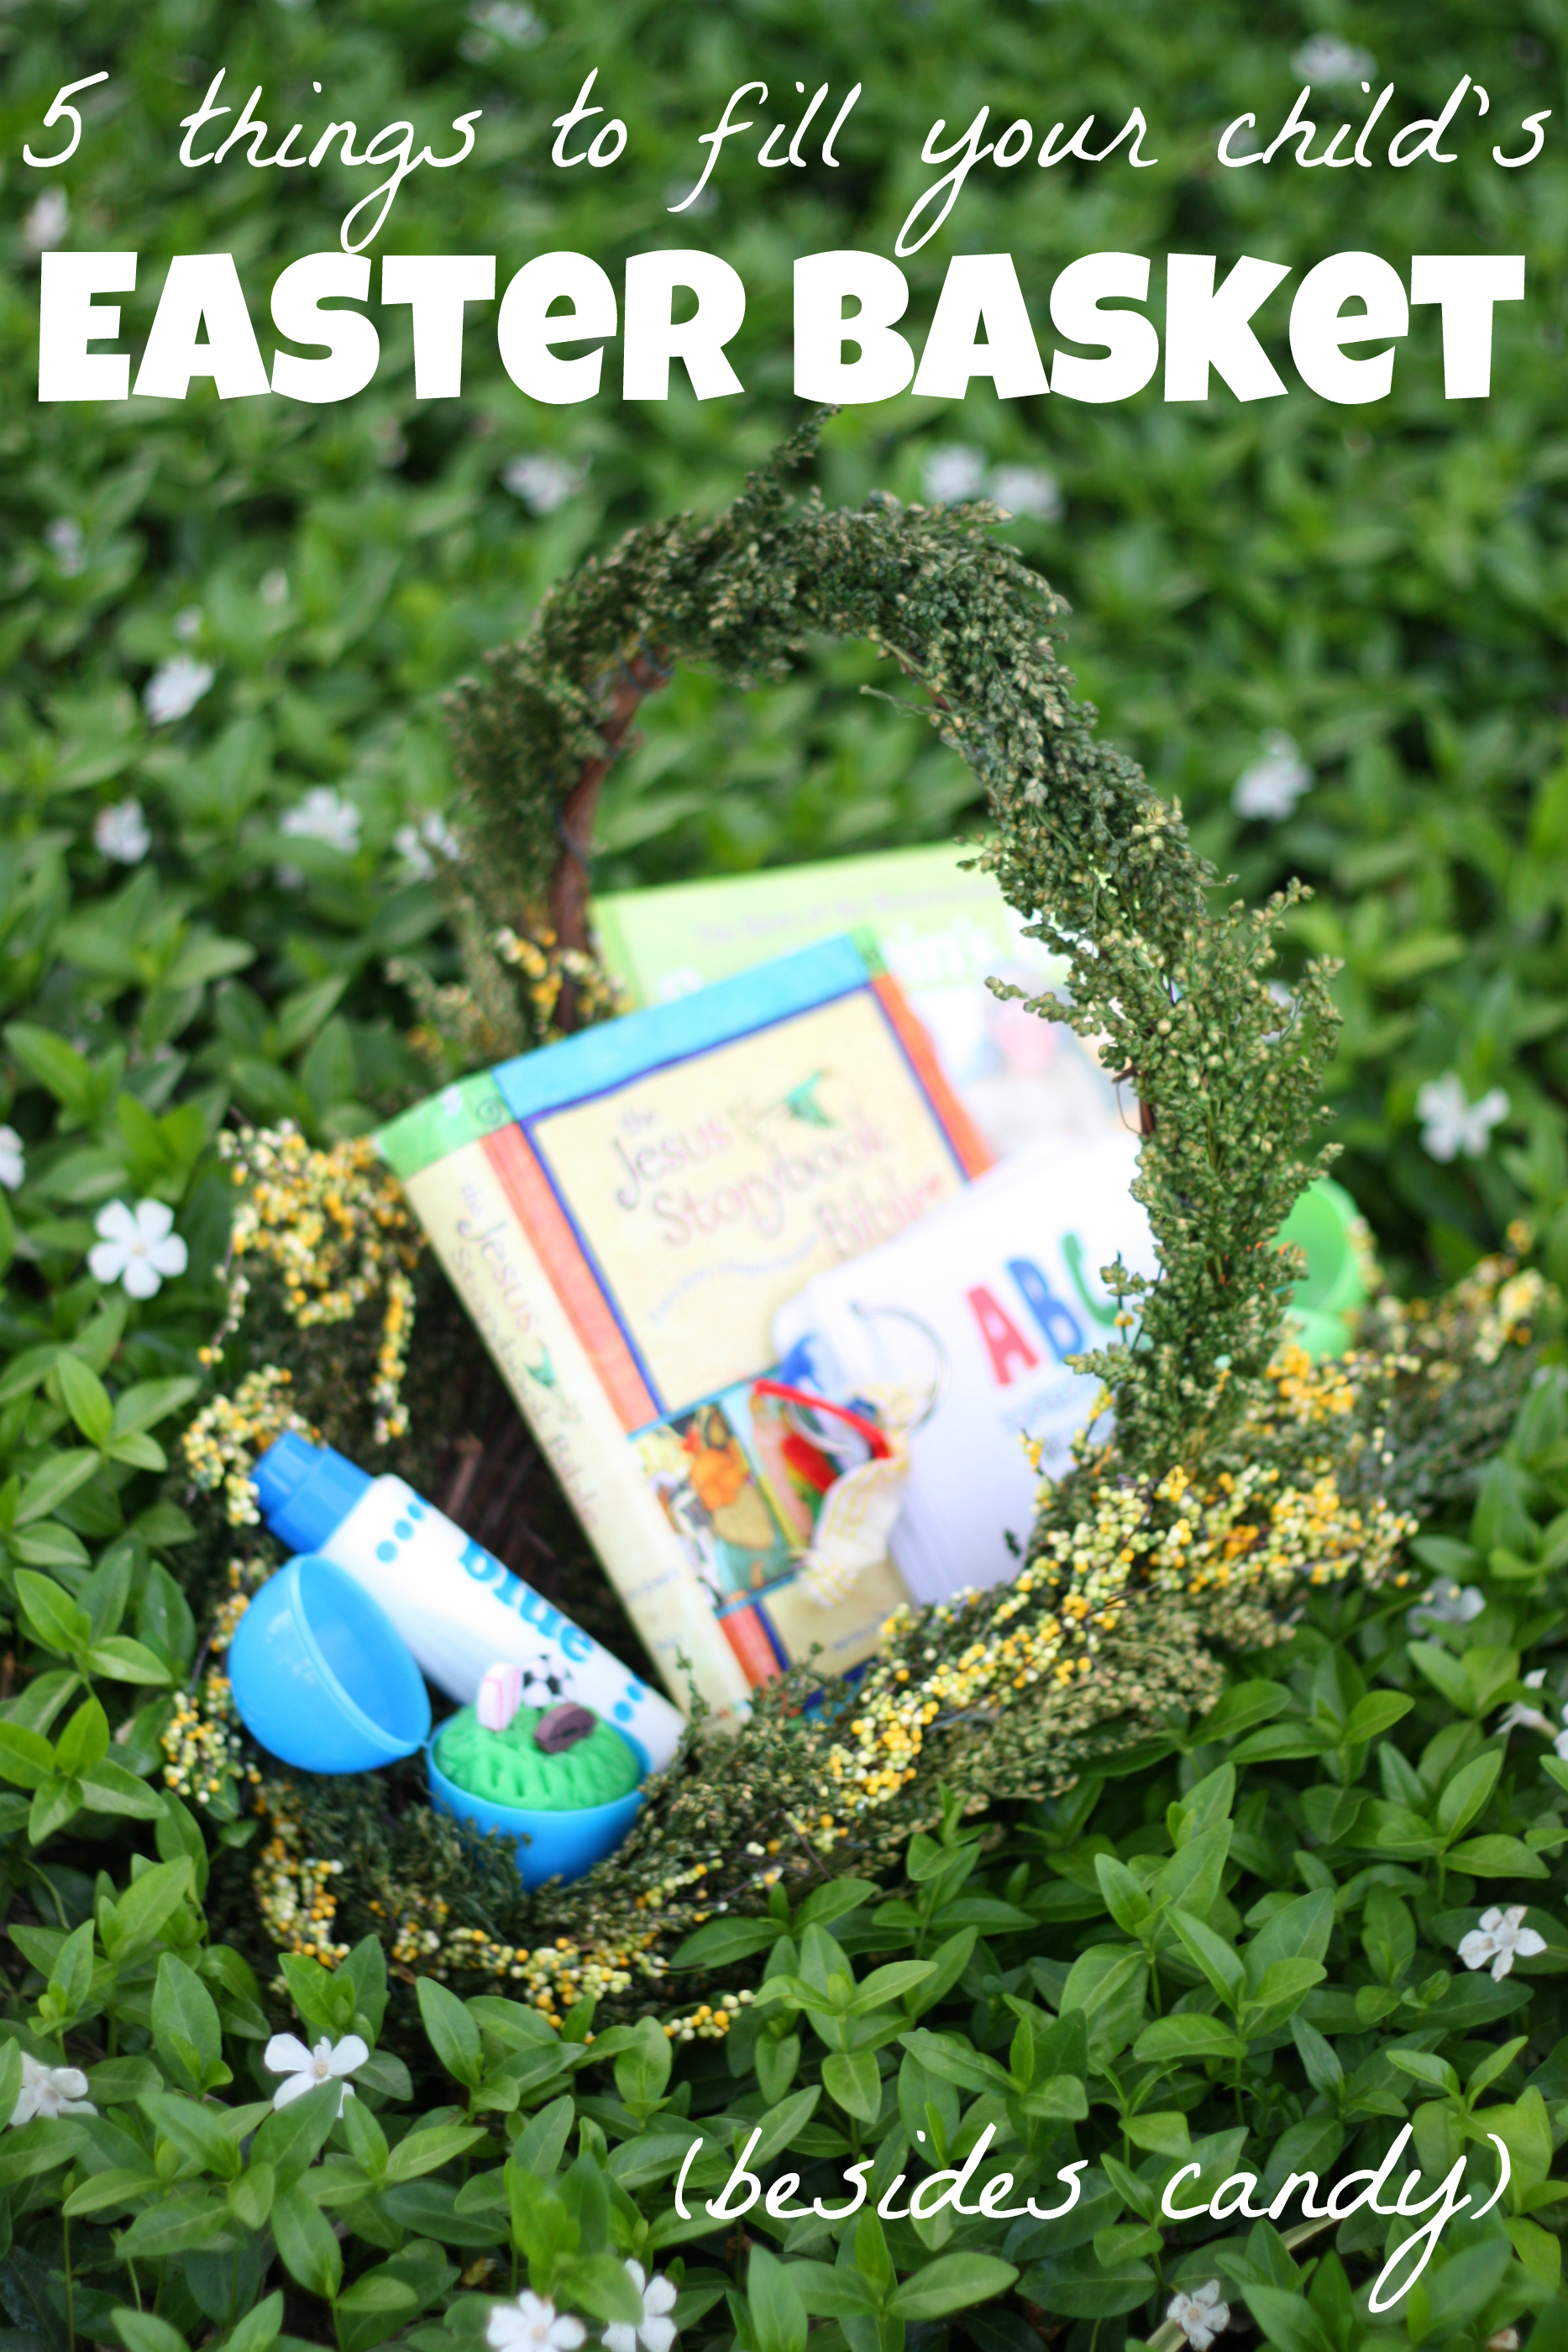 5 Things to Fill Your Child's Easter Basket (besides candy)